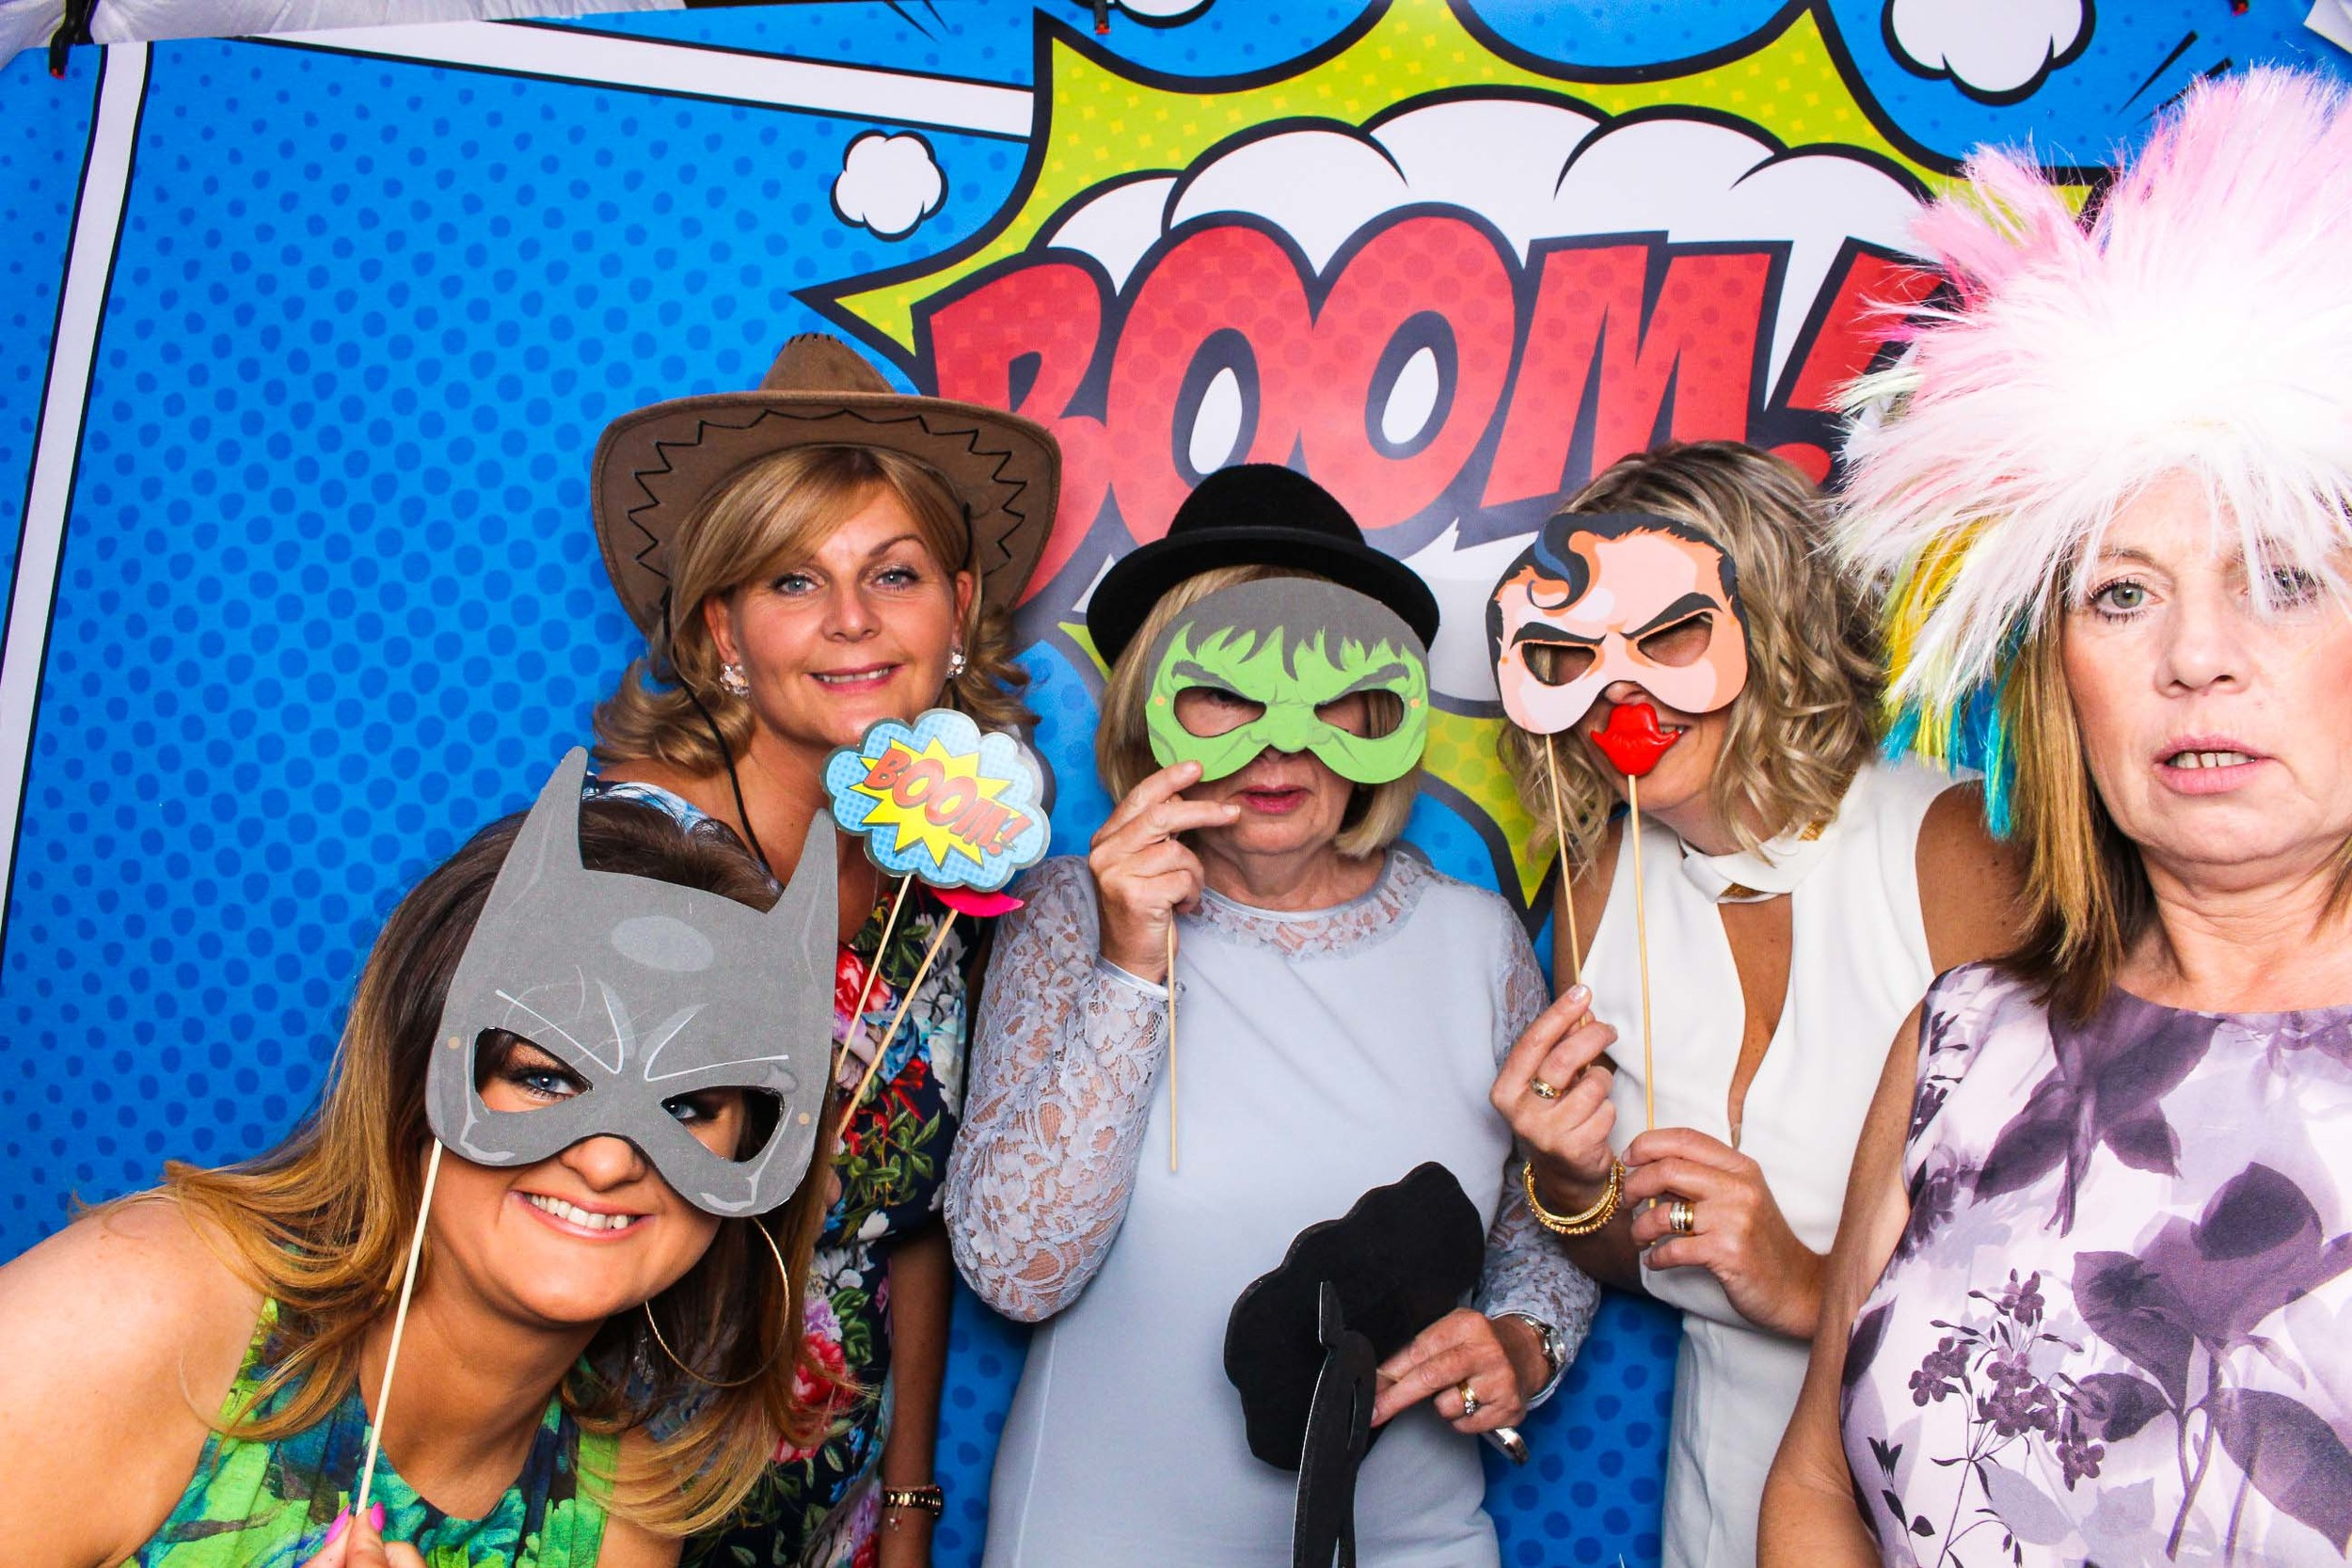 Fotoauto Photo Booth Hire - Shop Direct-67.jpg